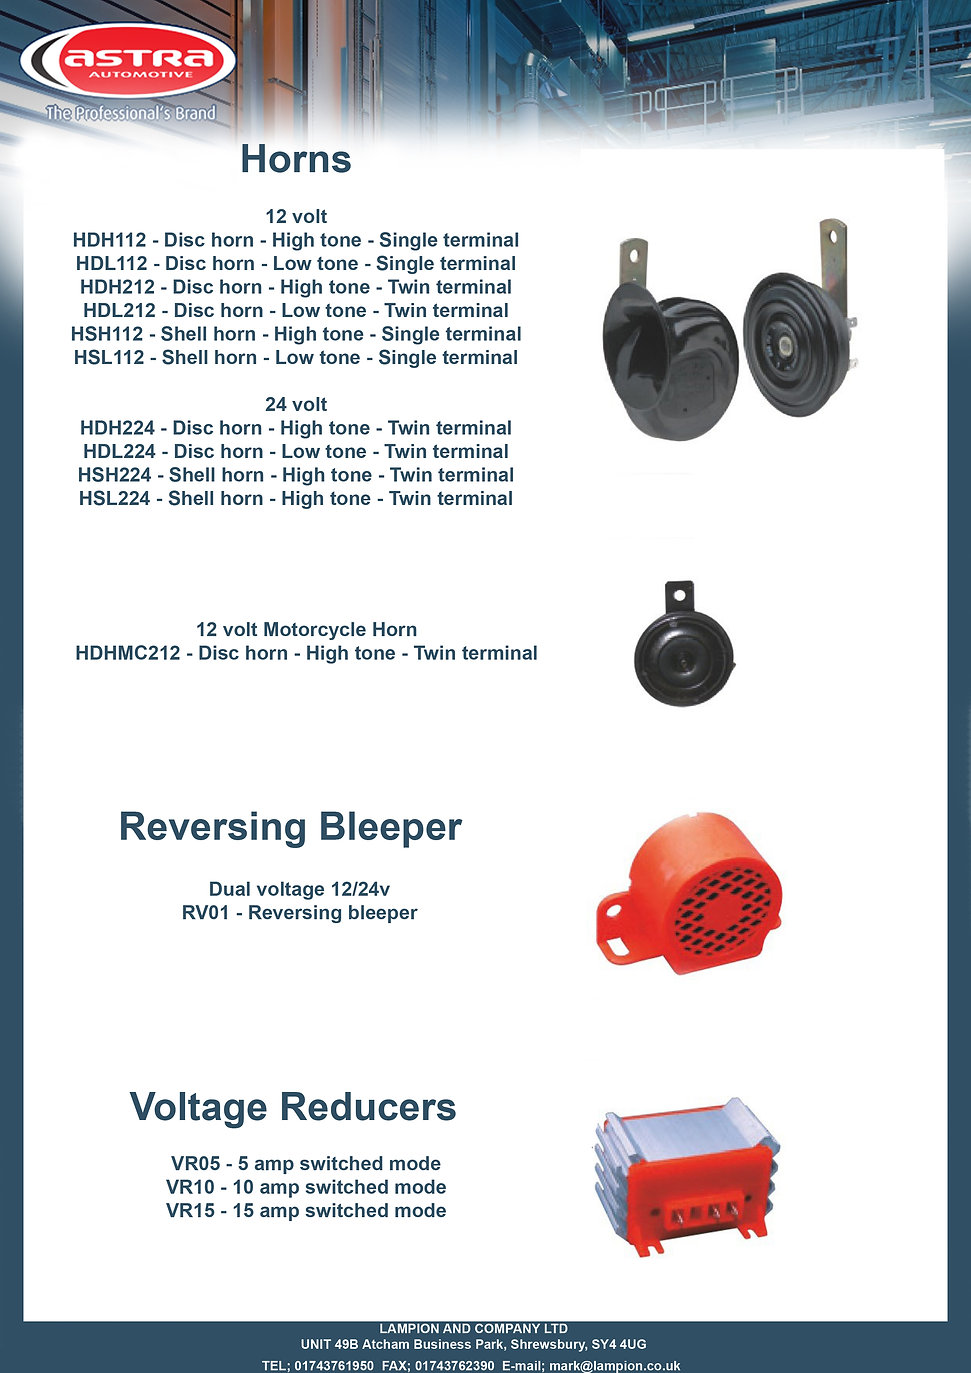 Horns voltage reducers and bleepers copy